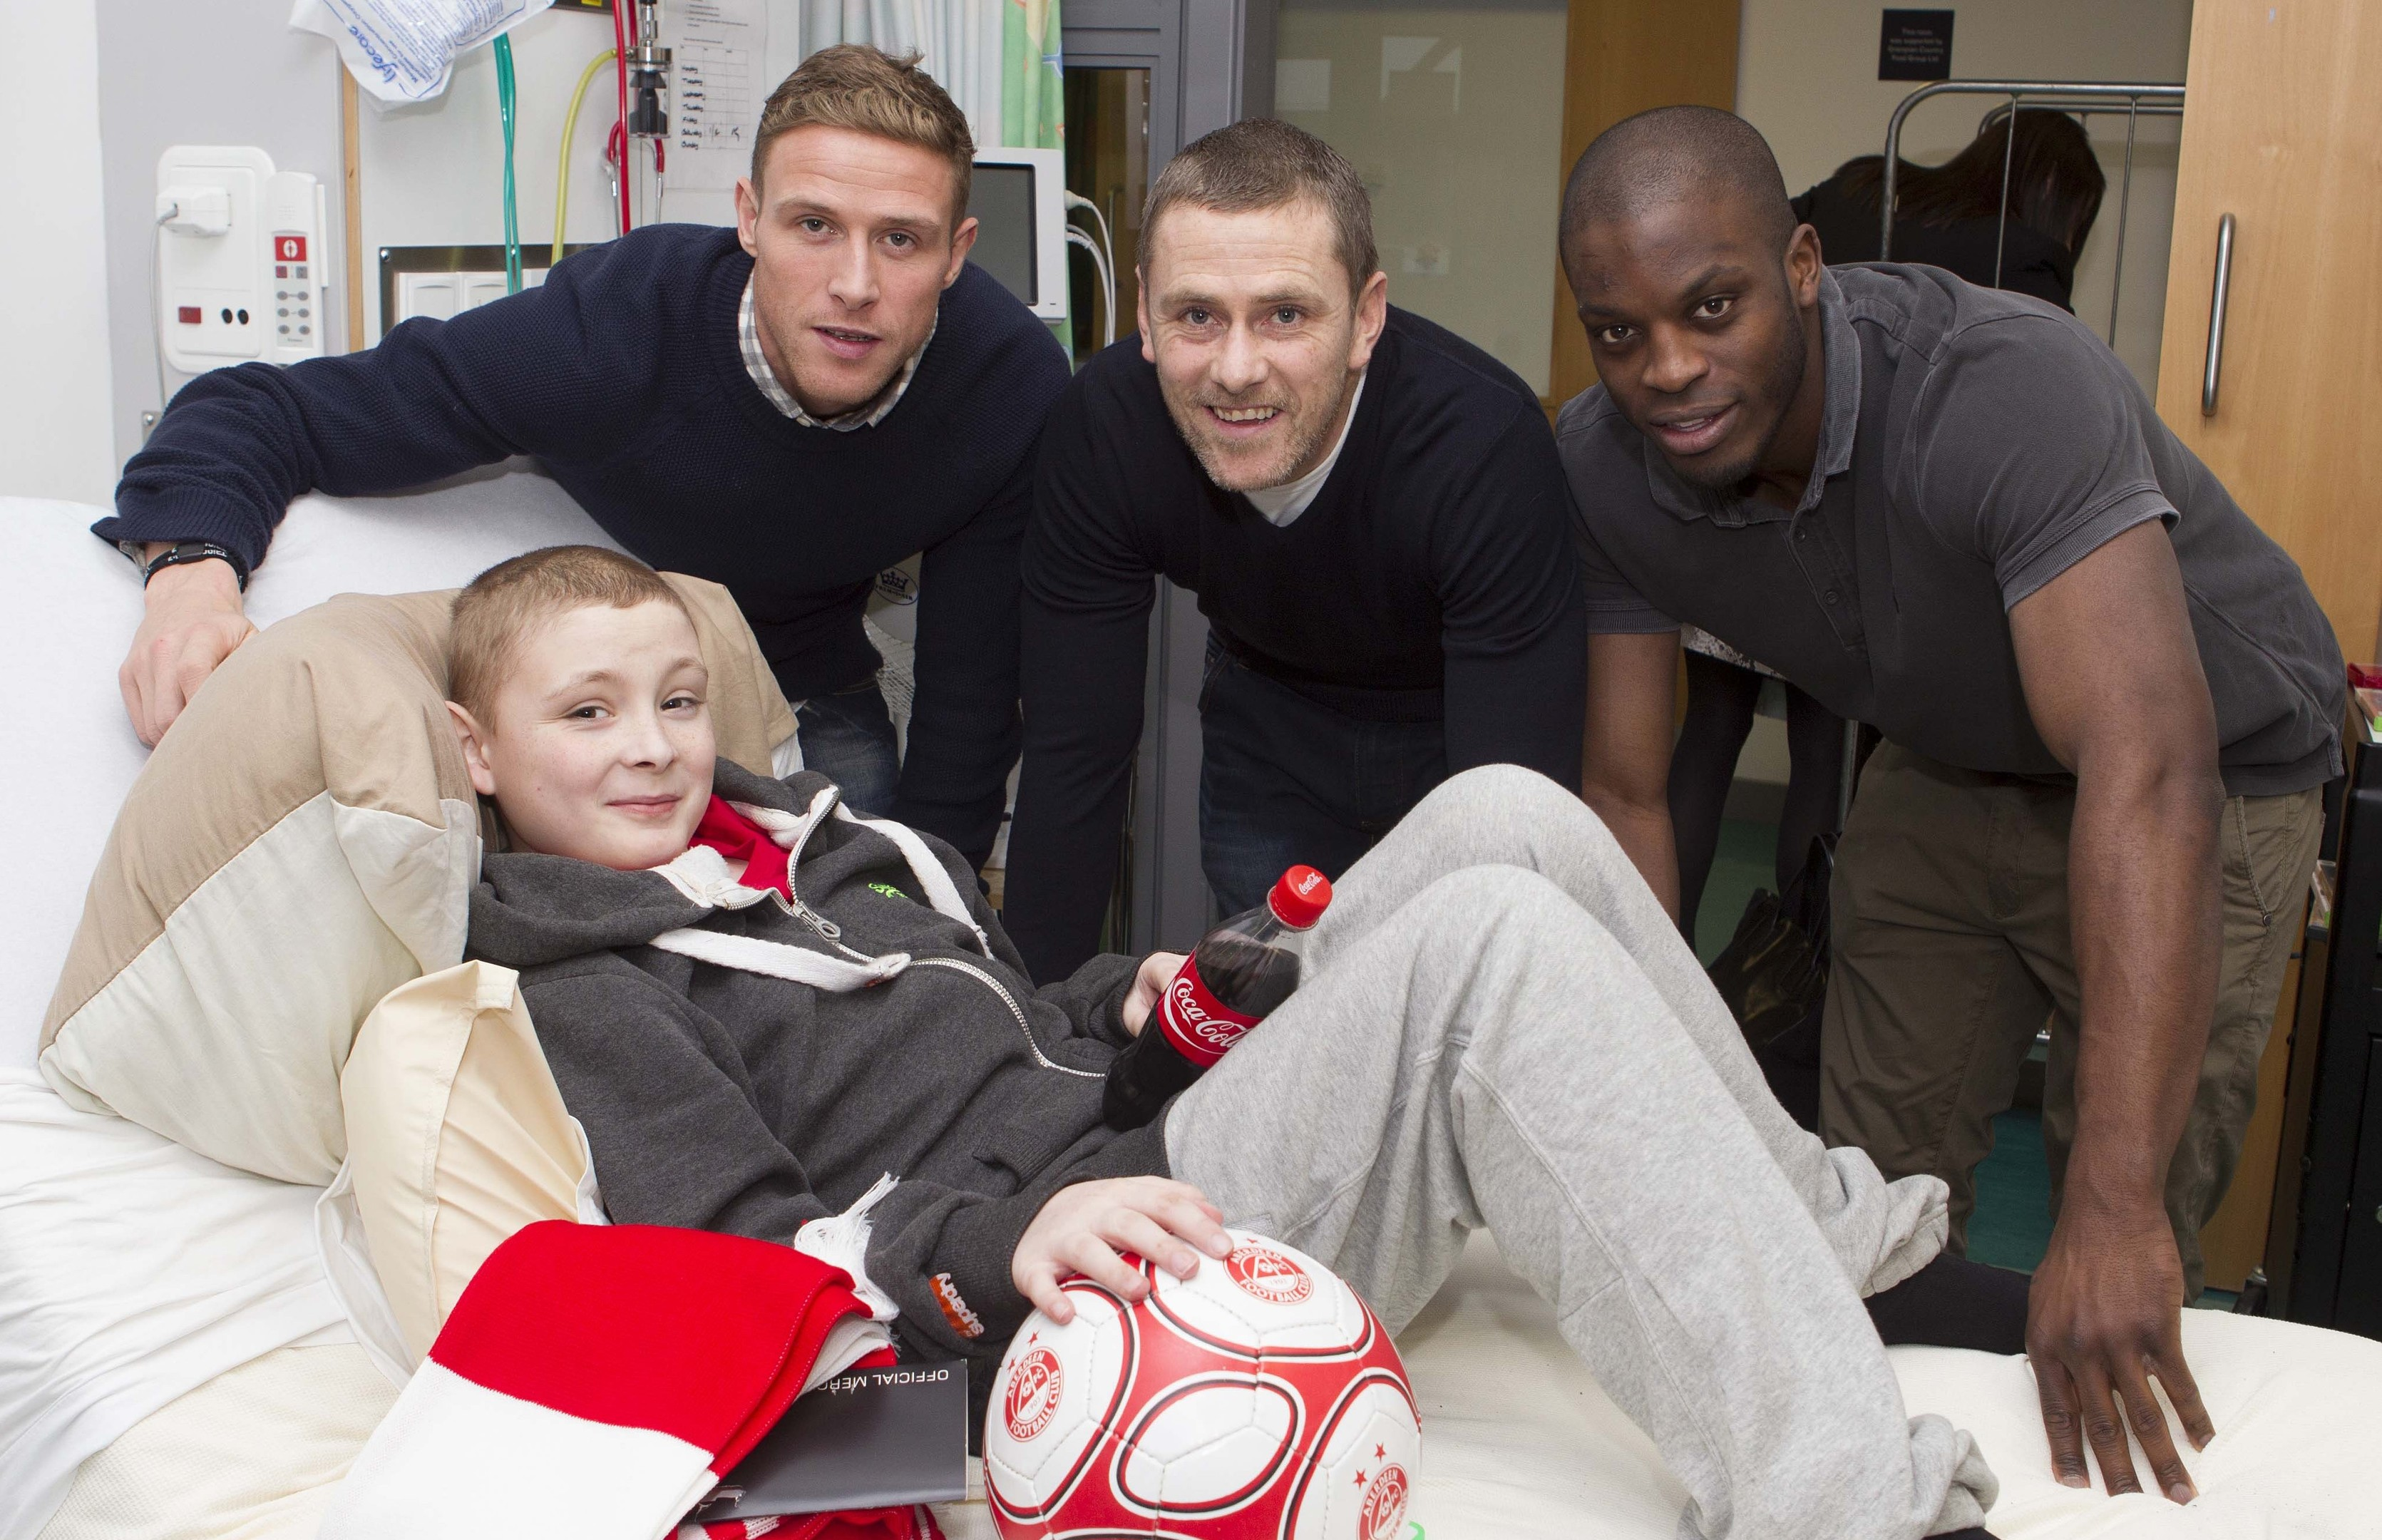 Kain McLeod being visited at Royal Aberdeen Children's Hospital by Dons players Chris Clark, Gary Naysmith and Isaac Osbourne in December 2012.